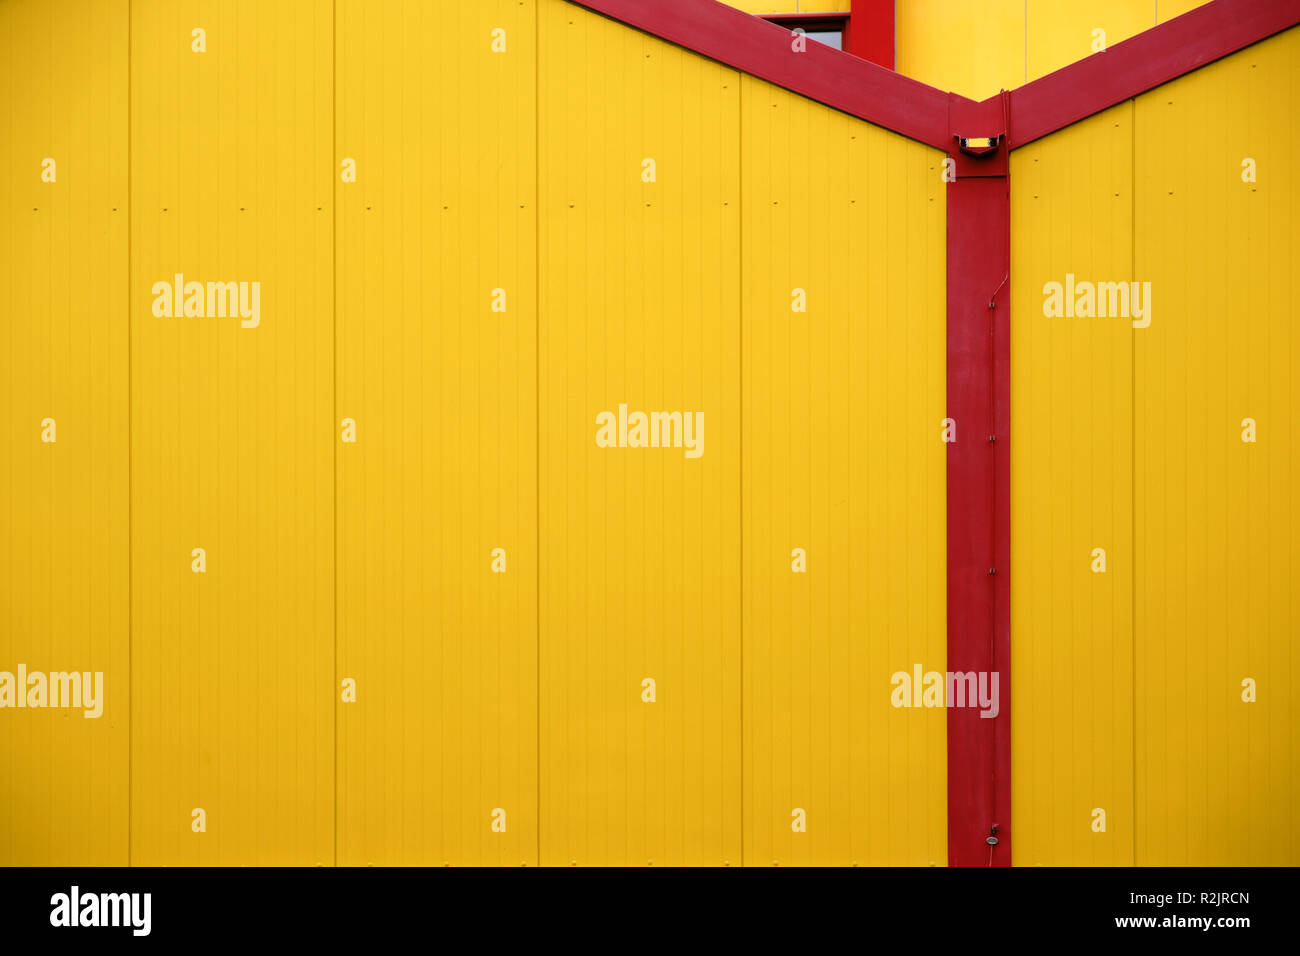 striking facade of a furniture and furnishing market - Stock Image